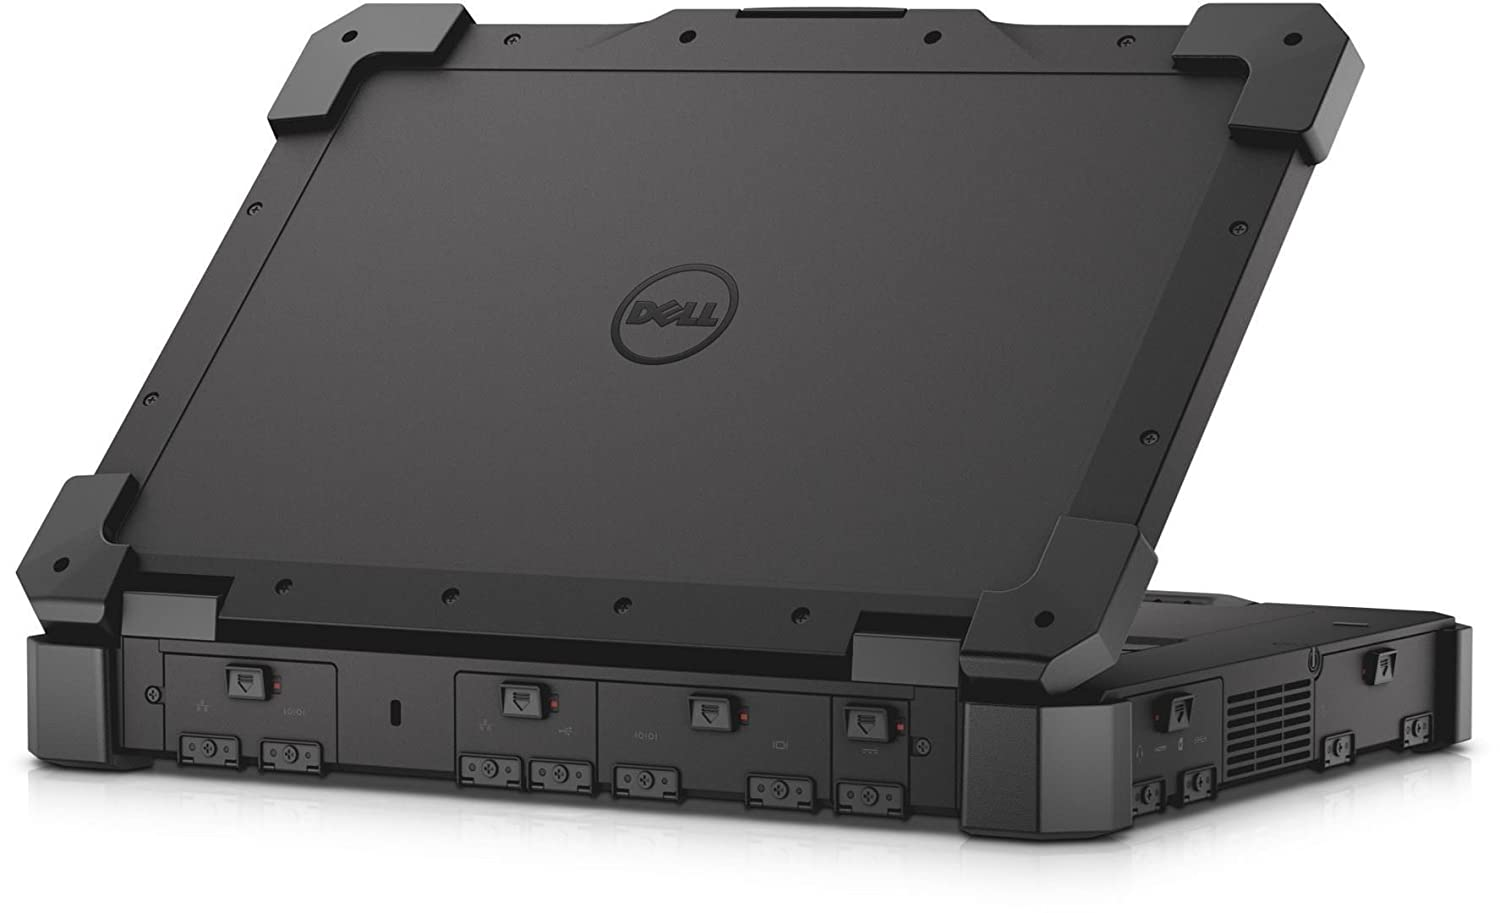 rugged m dell win co intel pro computers accessories uk amazon ram core rug tablet dp extreme ssd latitude